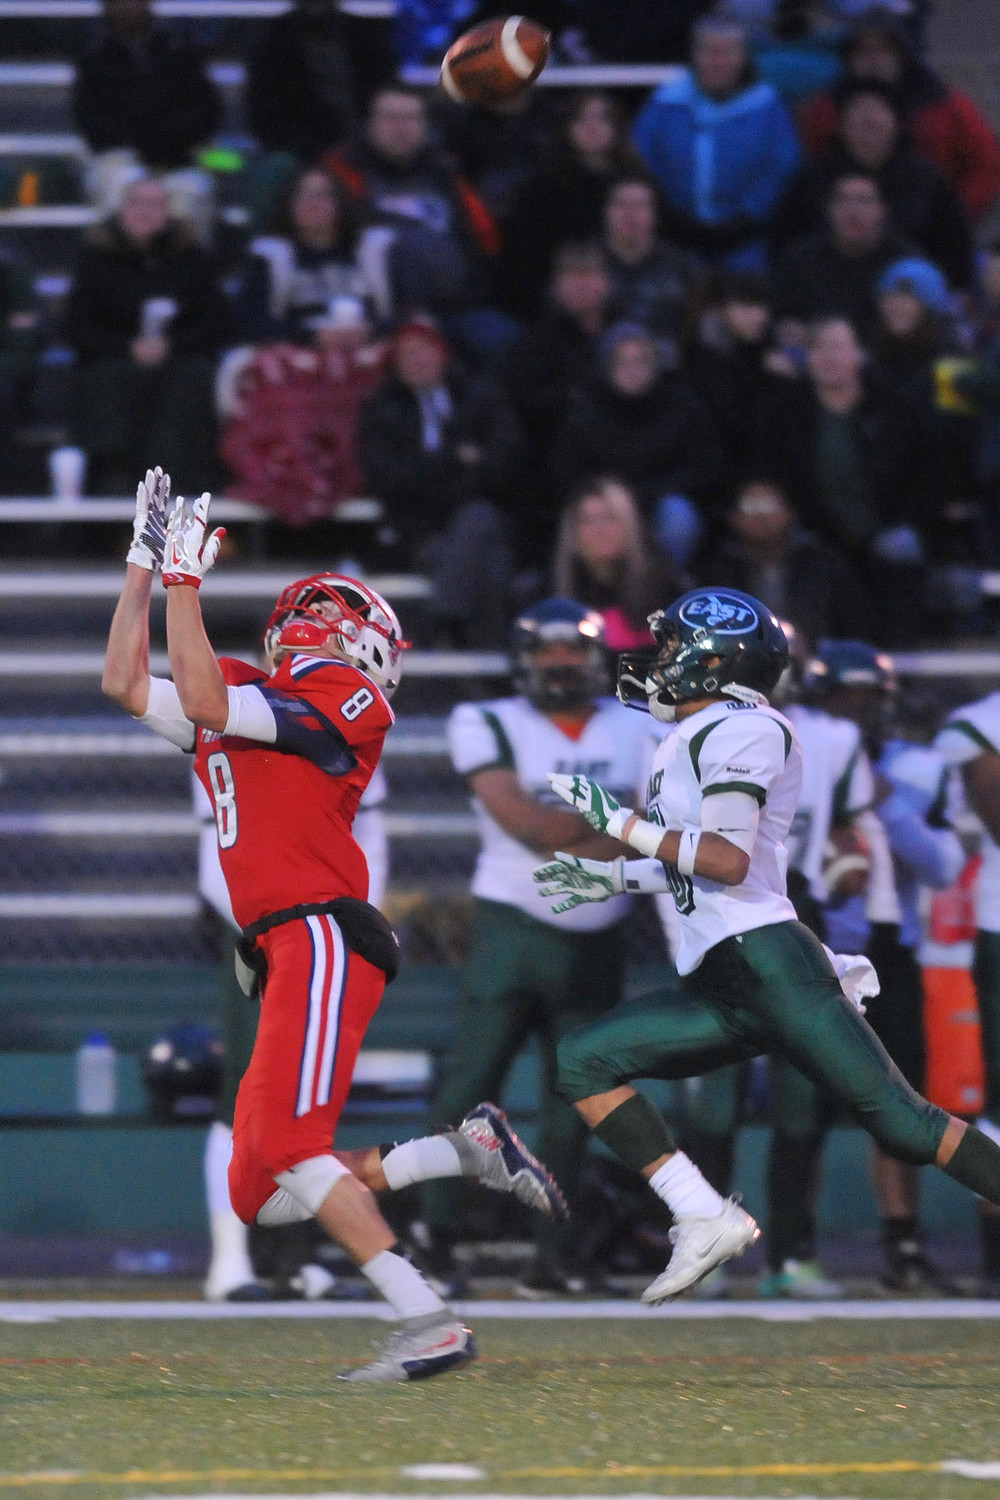 Portsmouth receiver Peyton Robinson hauls in a bomb from Kyle Bicho during the first quarter of Saturday's Division I championship game.